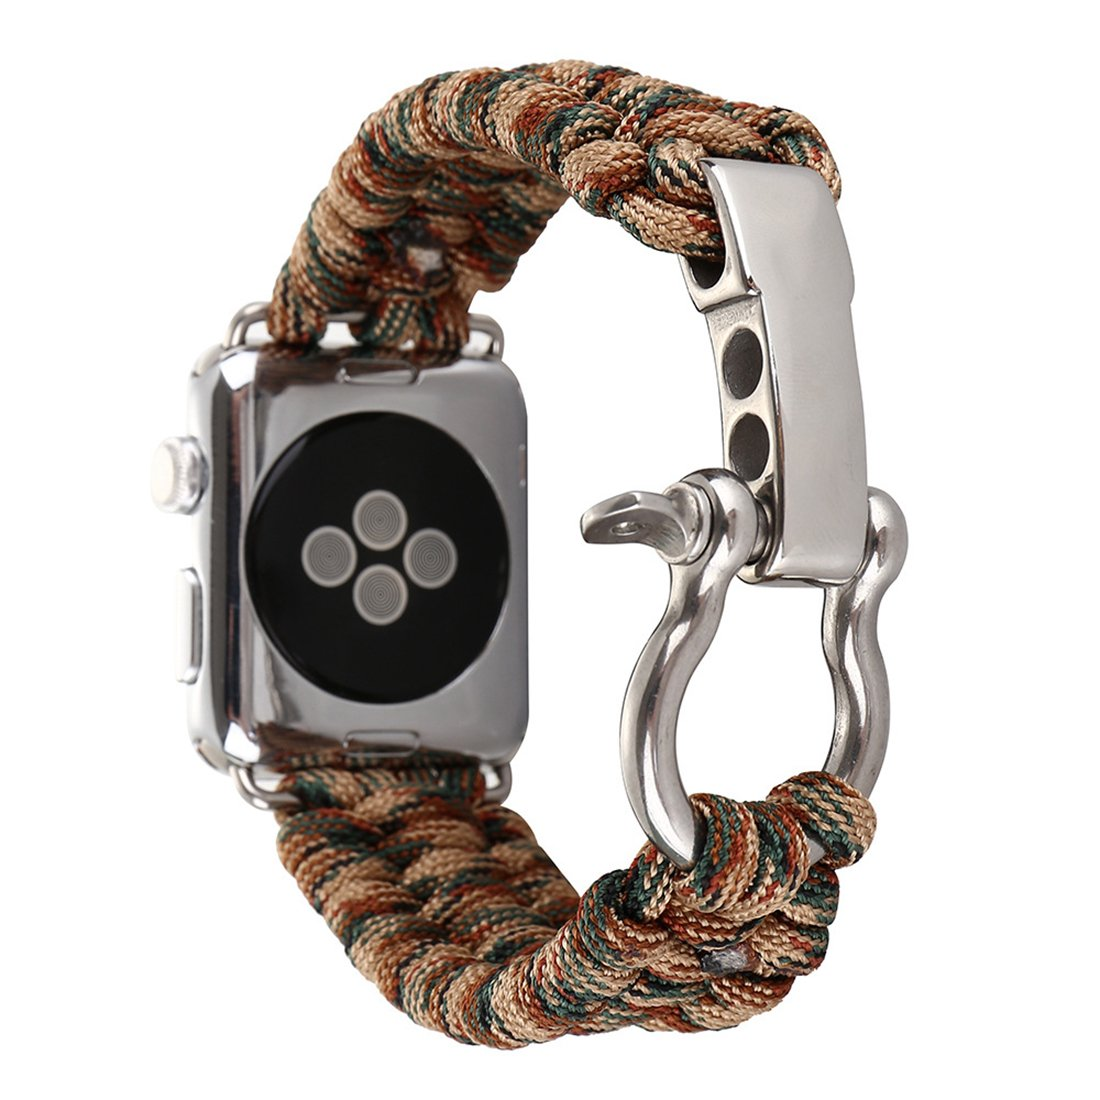 Alotm For Apple Watch Band, 42mm Replacement Apple Watch Band Paracord Watch Band with Rugged Outdoor Survival Stainless Steel Shackle and 550 Paracord (Camouflage Brown, 42MM)